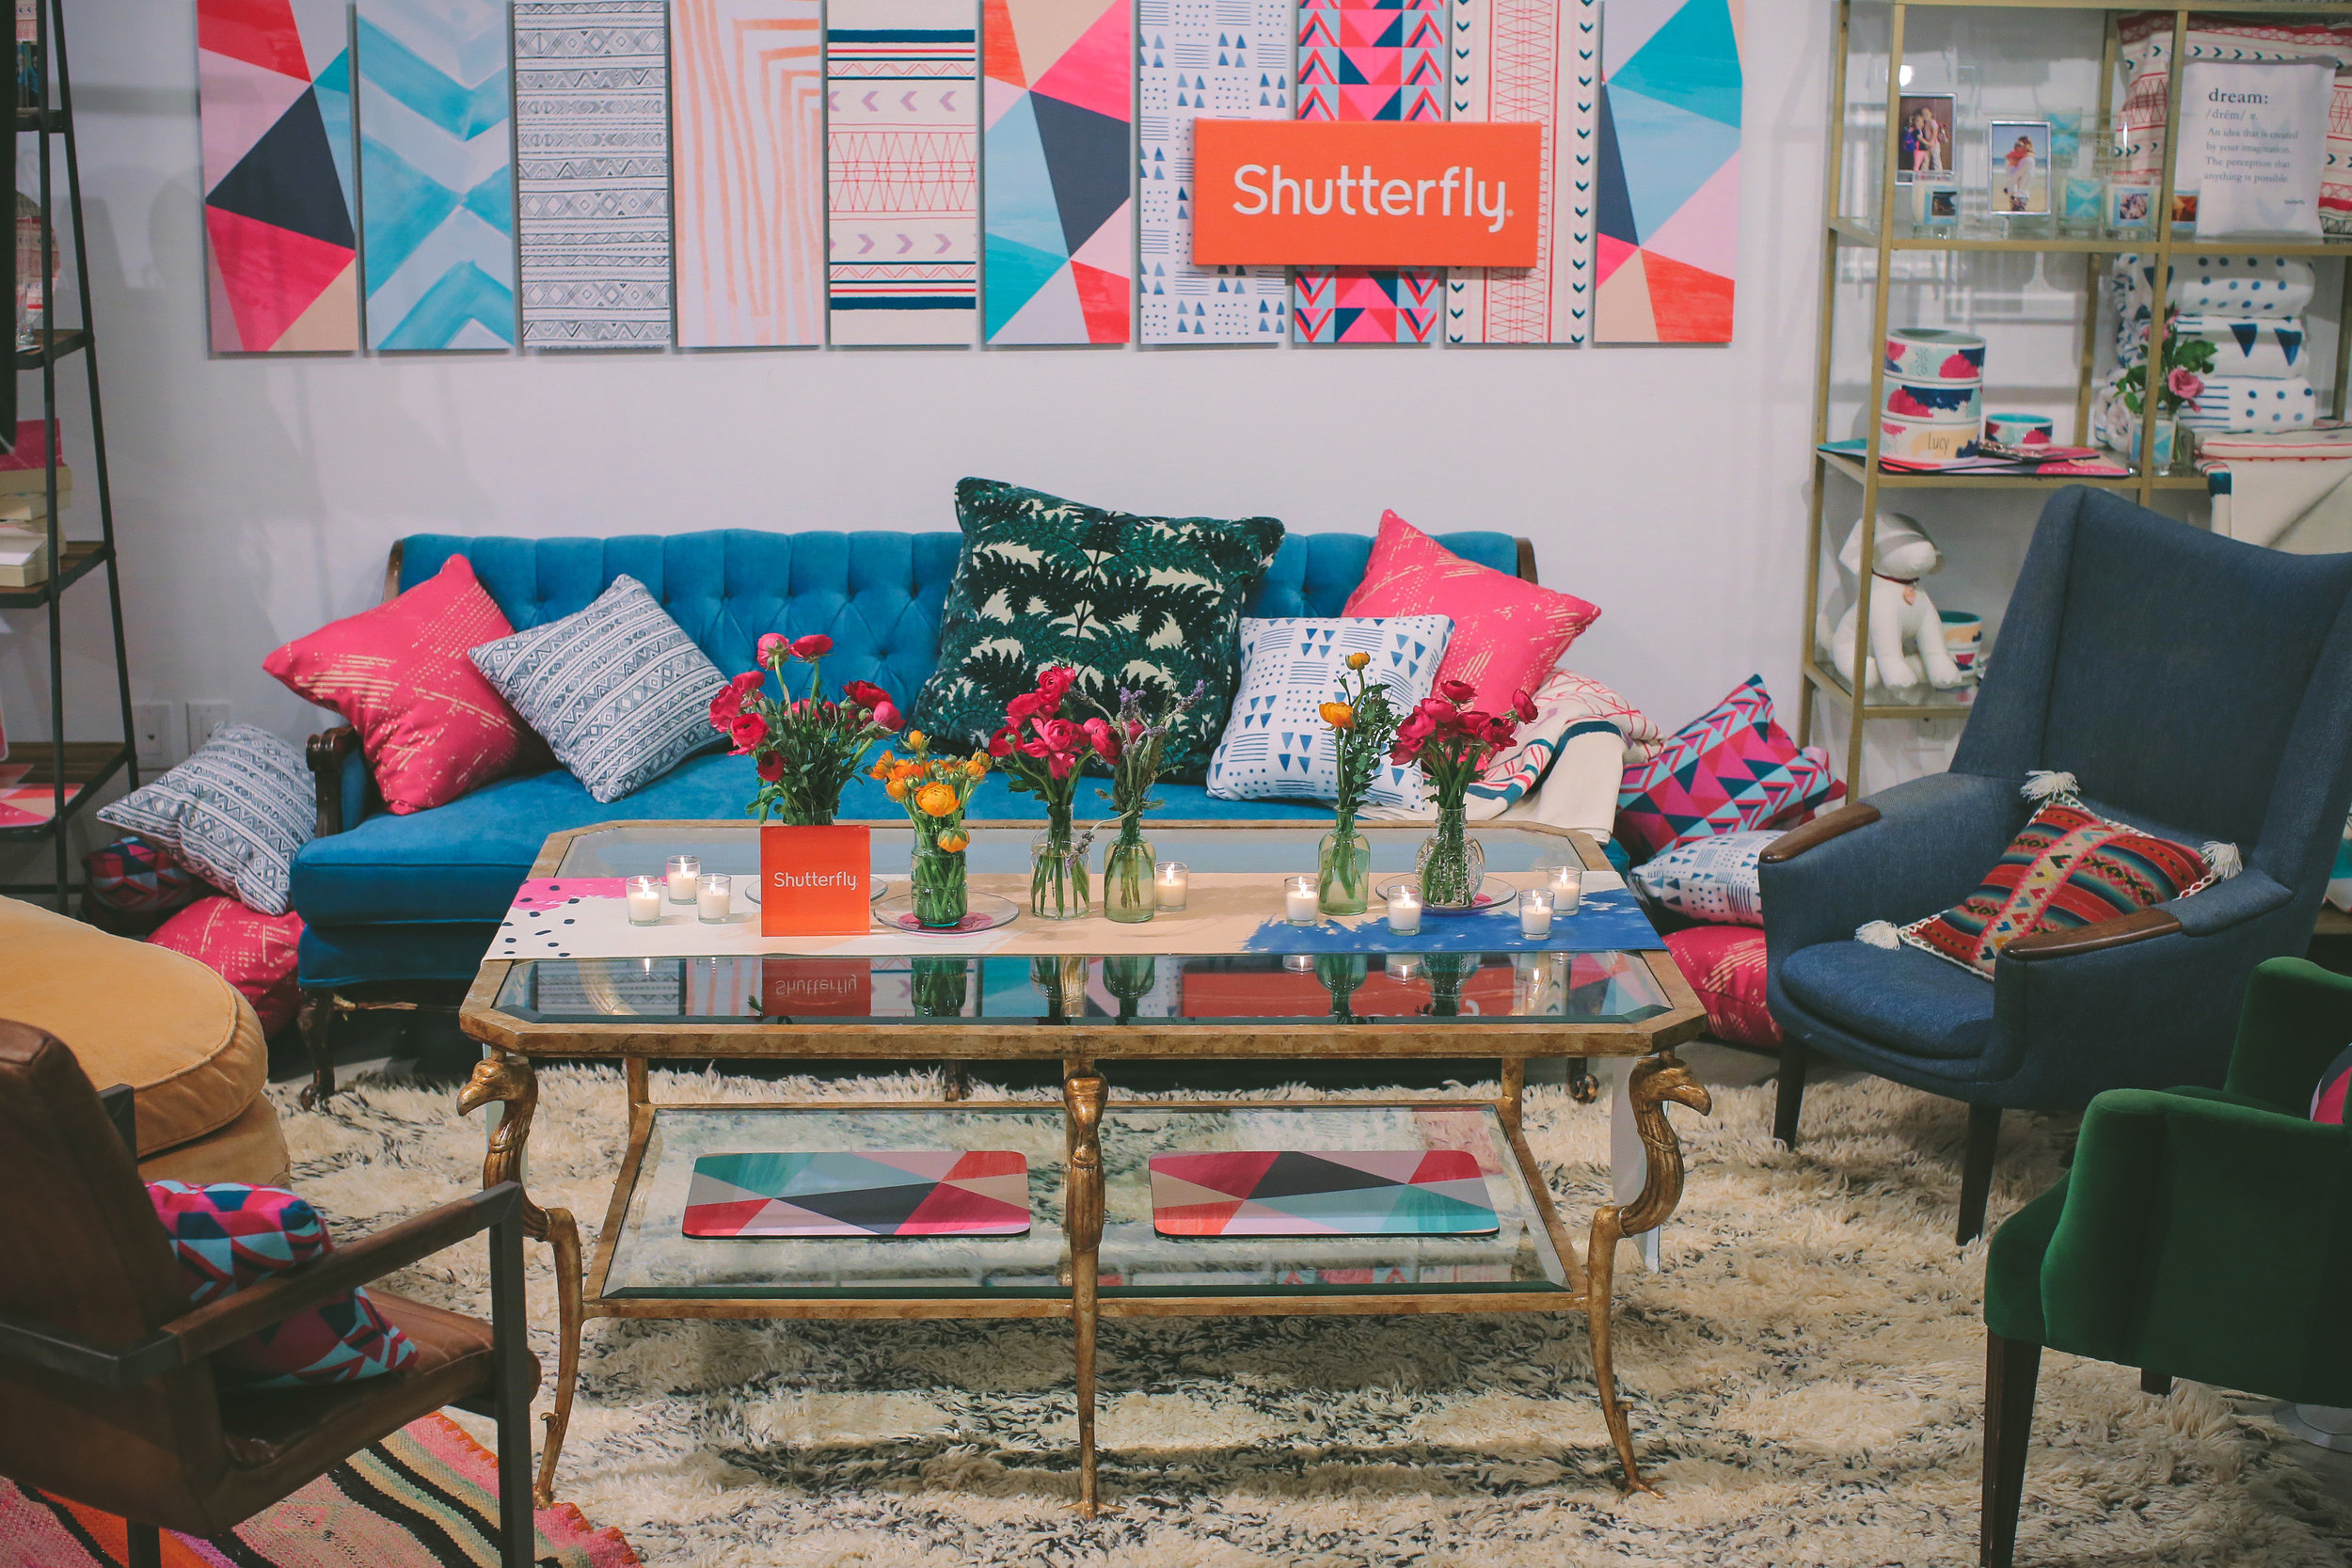 For this event I made the wall panels with Shutterfly wall art as a background behind the couch, pillows and most of the background product.